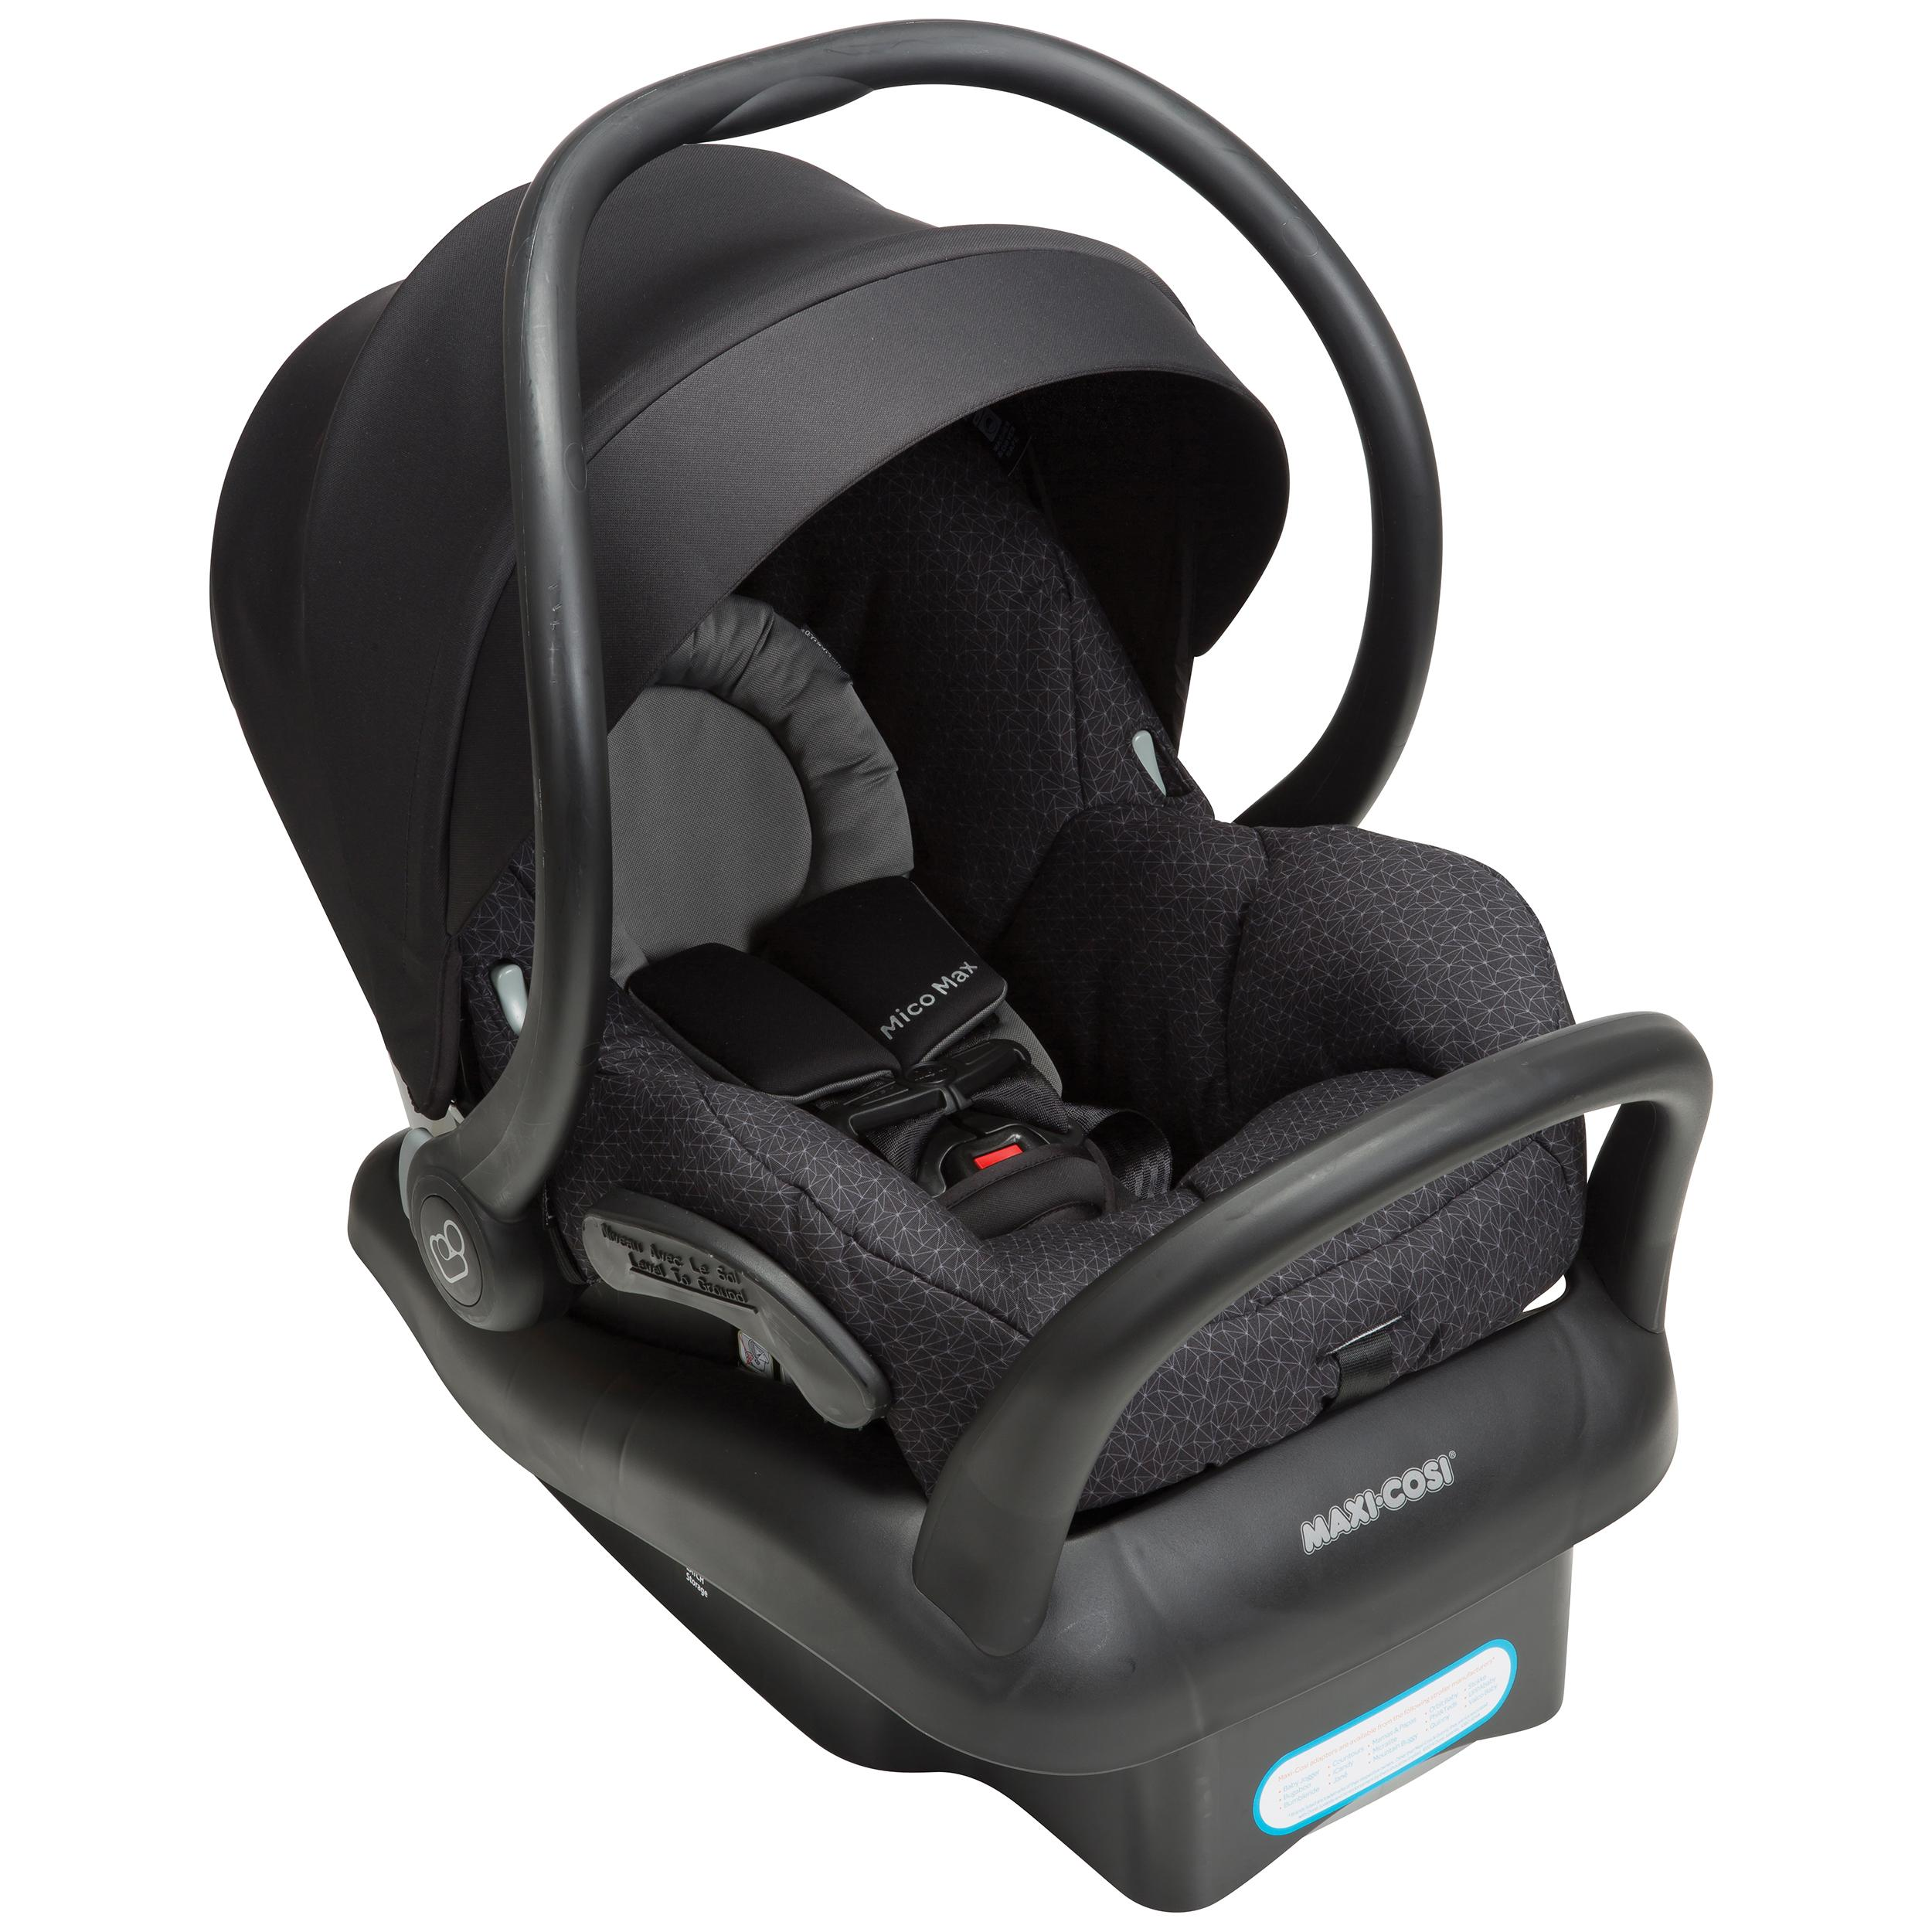 Maxi Cosi Mico Max 30 Infant Car Seat Grey Gravel Amazon